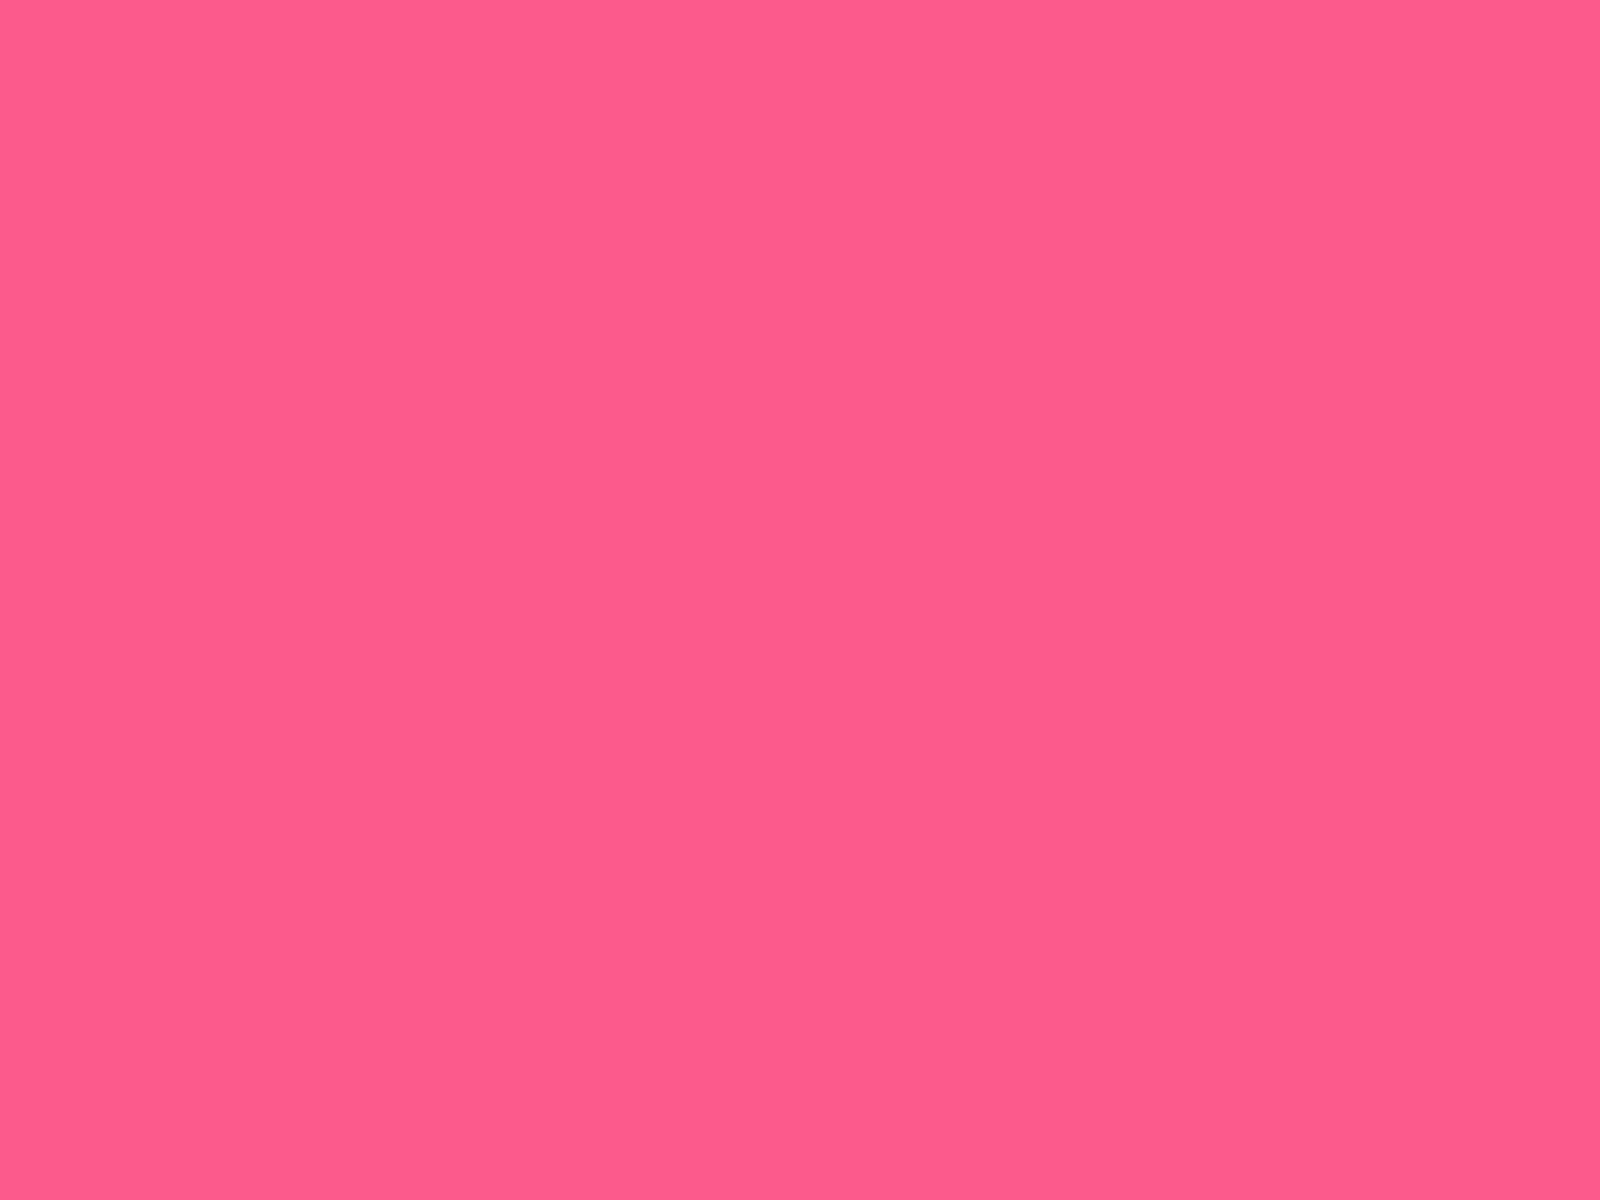 1600x1200 Strawberry Solid Color Background